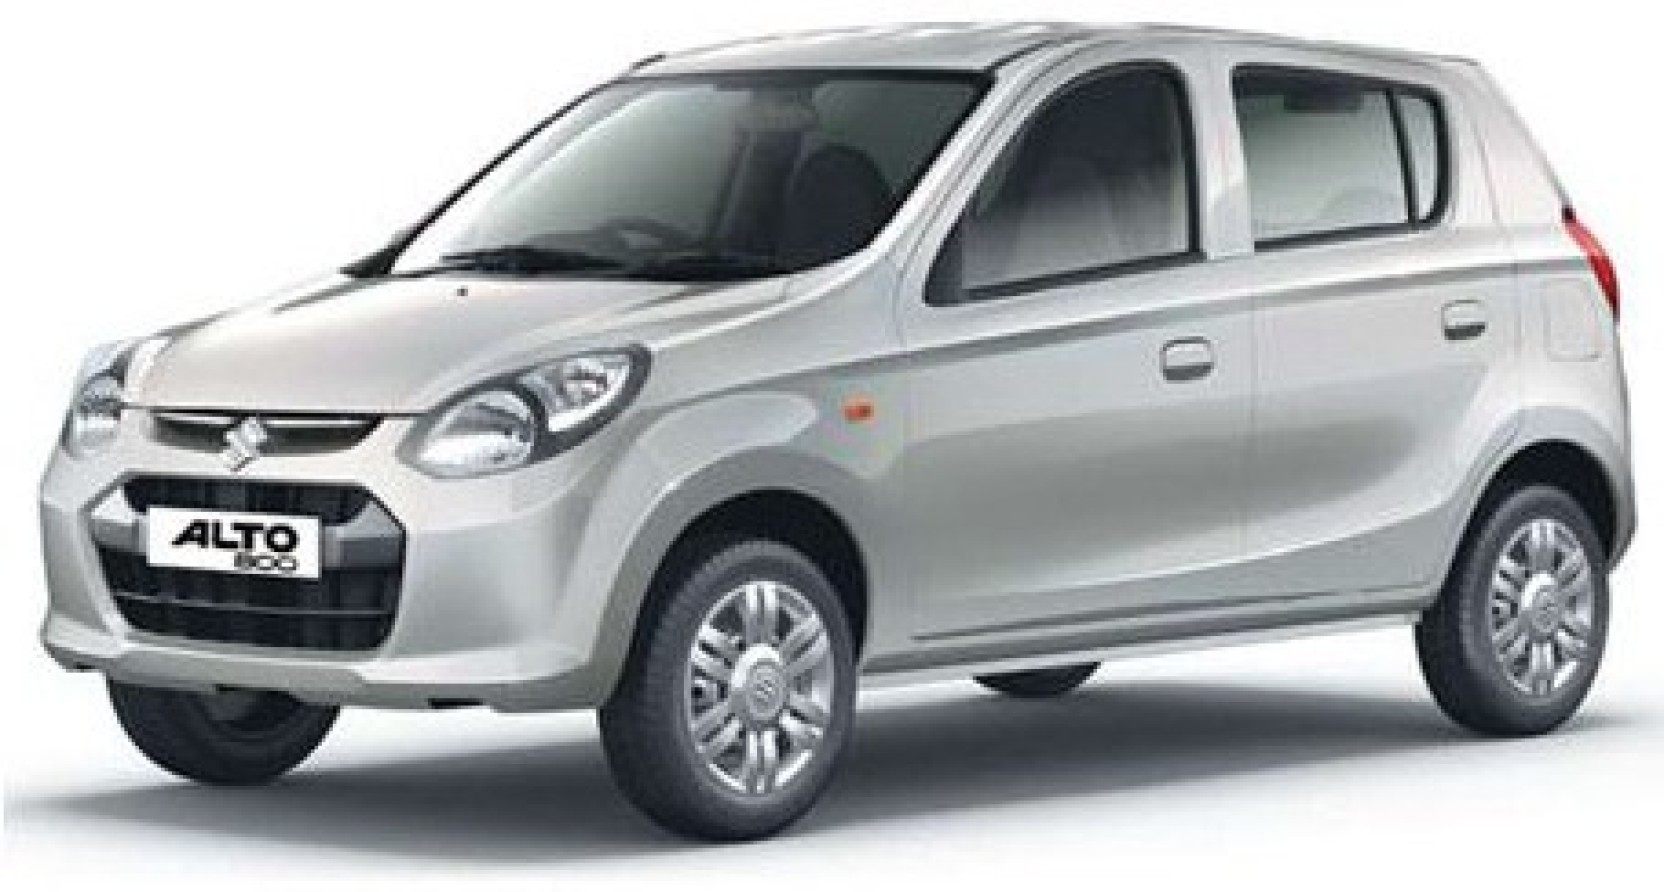 Maruti Suzuki Alto 800 LX (Ex-showroom price starting from Rs 3,05,769)  (Book for Rs 10,000)